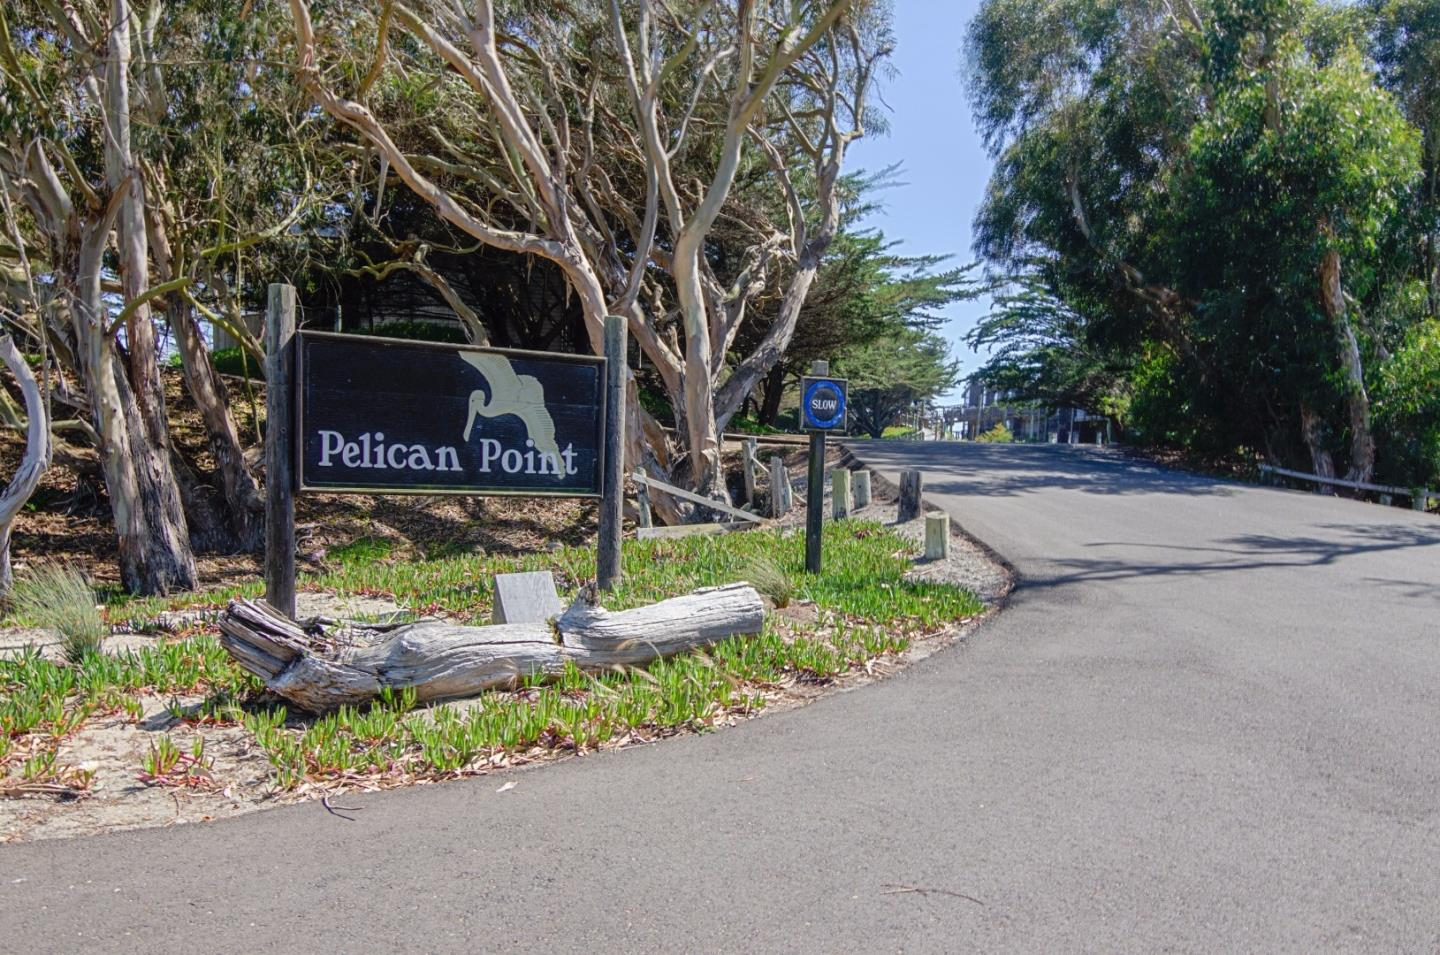 Additional photo for property listing at 72 Pelican Point 72 Pelican Point Watsonville, Californie 95076 États-Unis